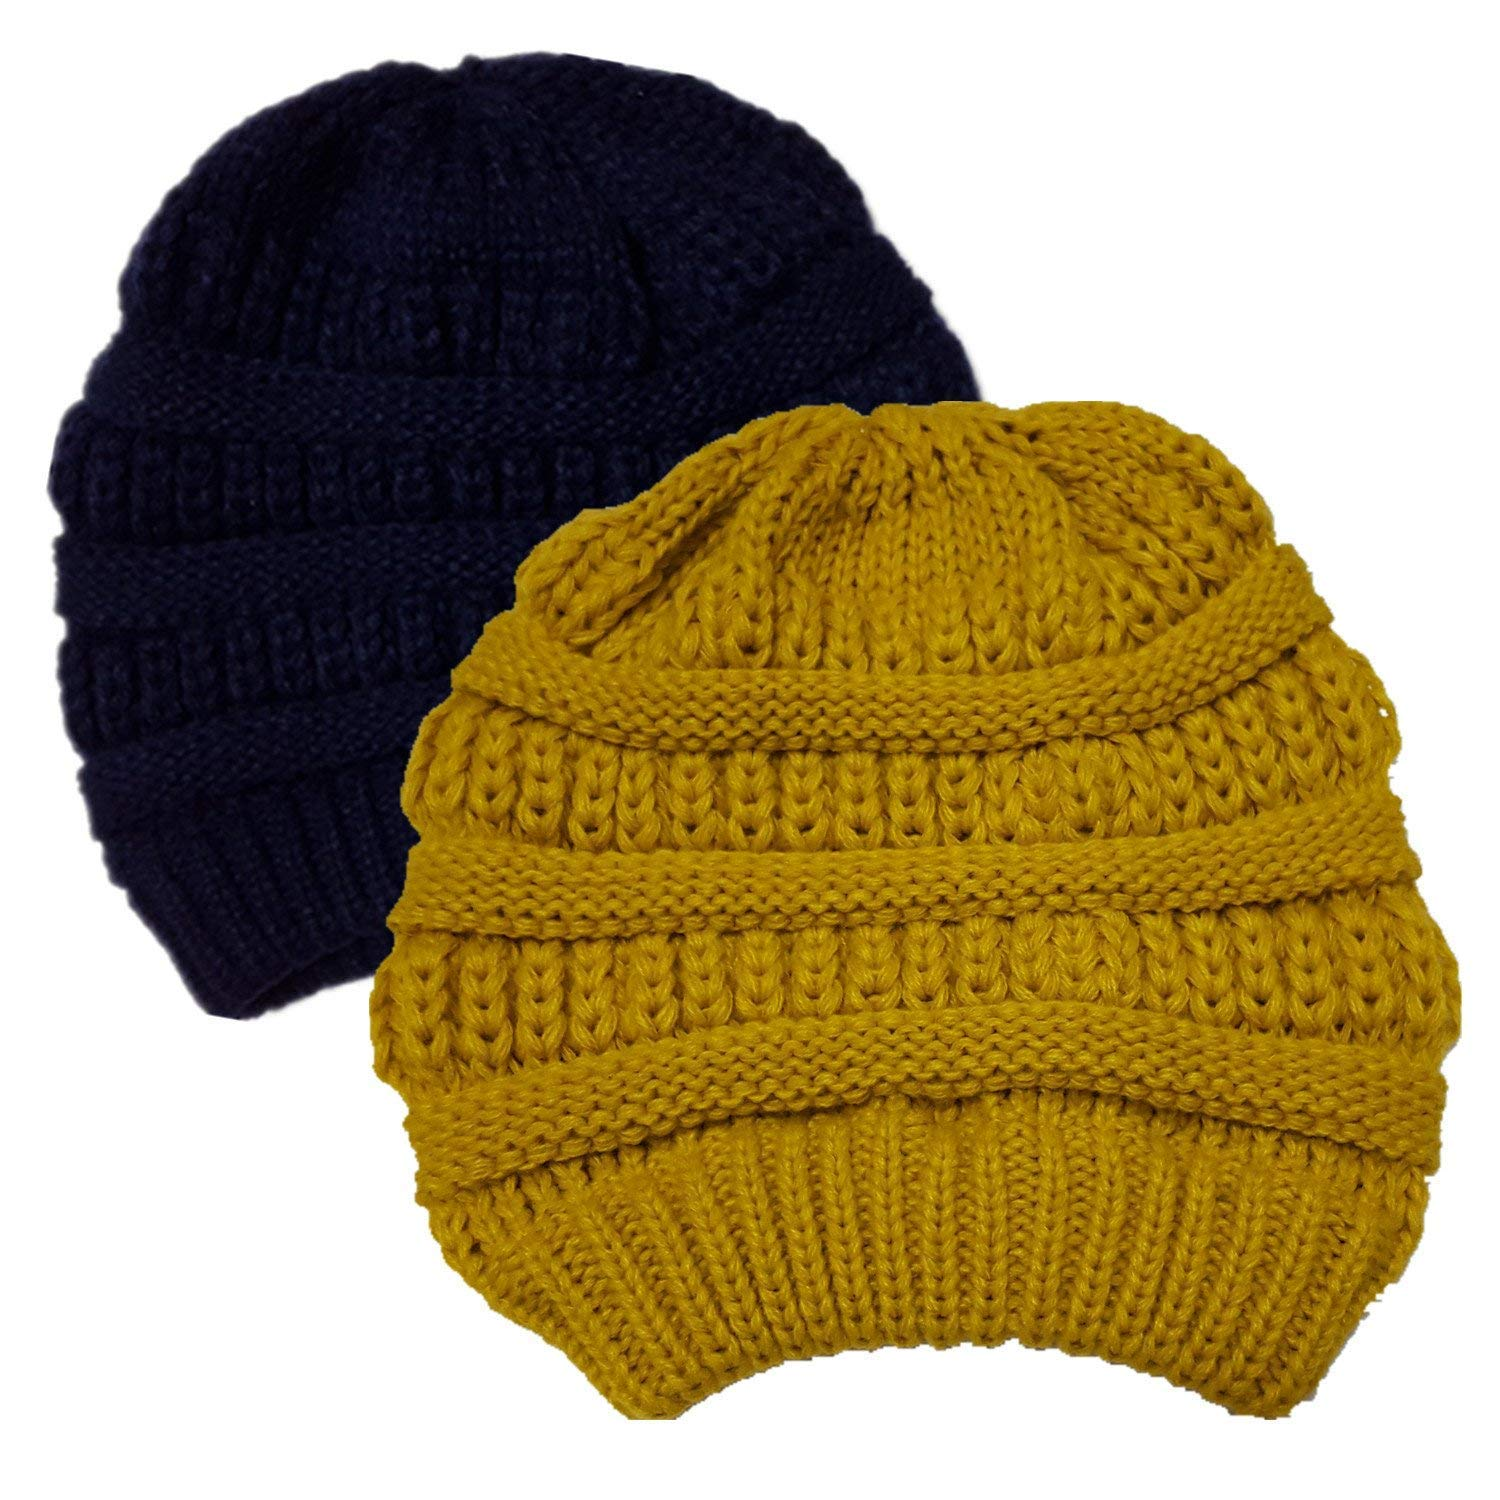 9a78236854850 Shipping by USPS delivery in 7-15 working days. Beanie Hat is 100%  Acrylic